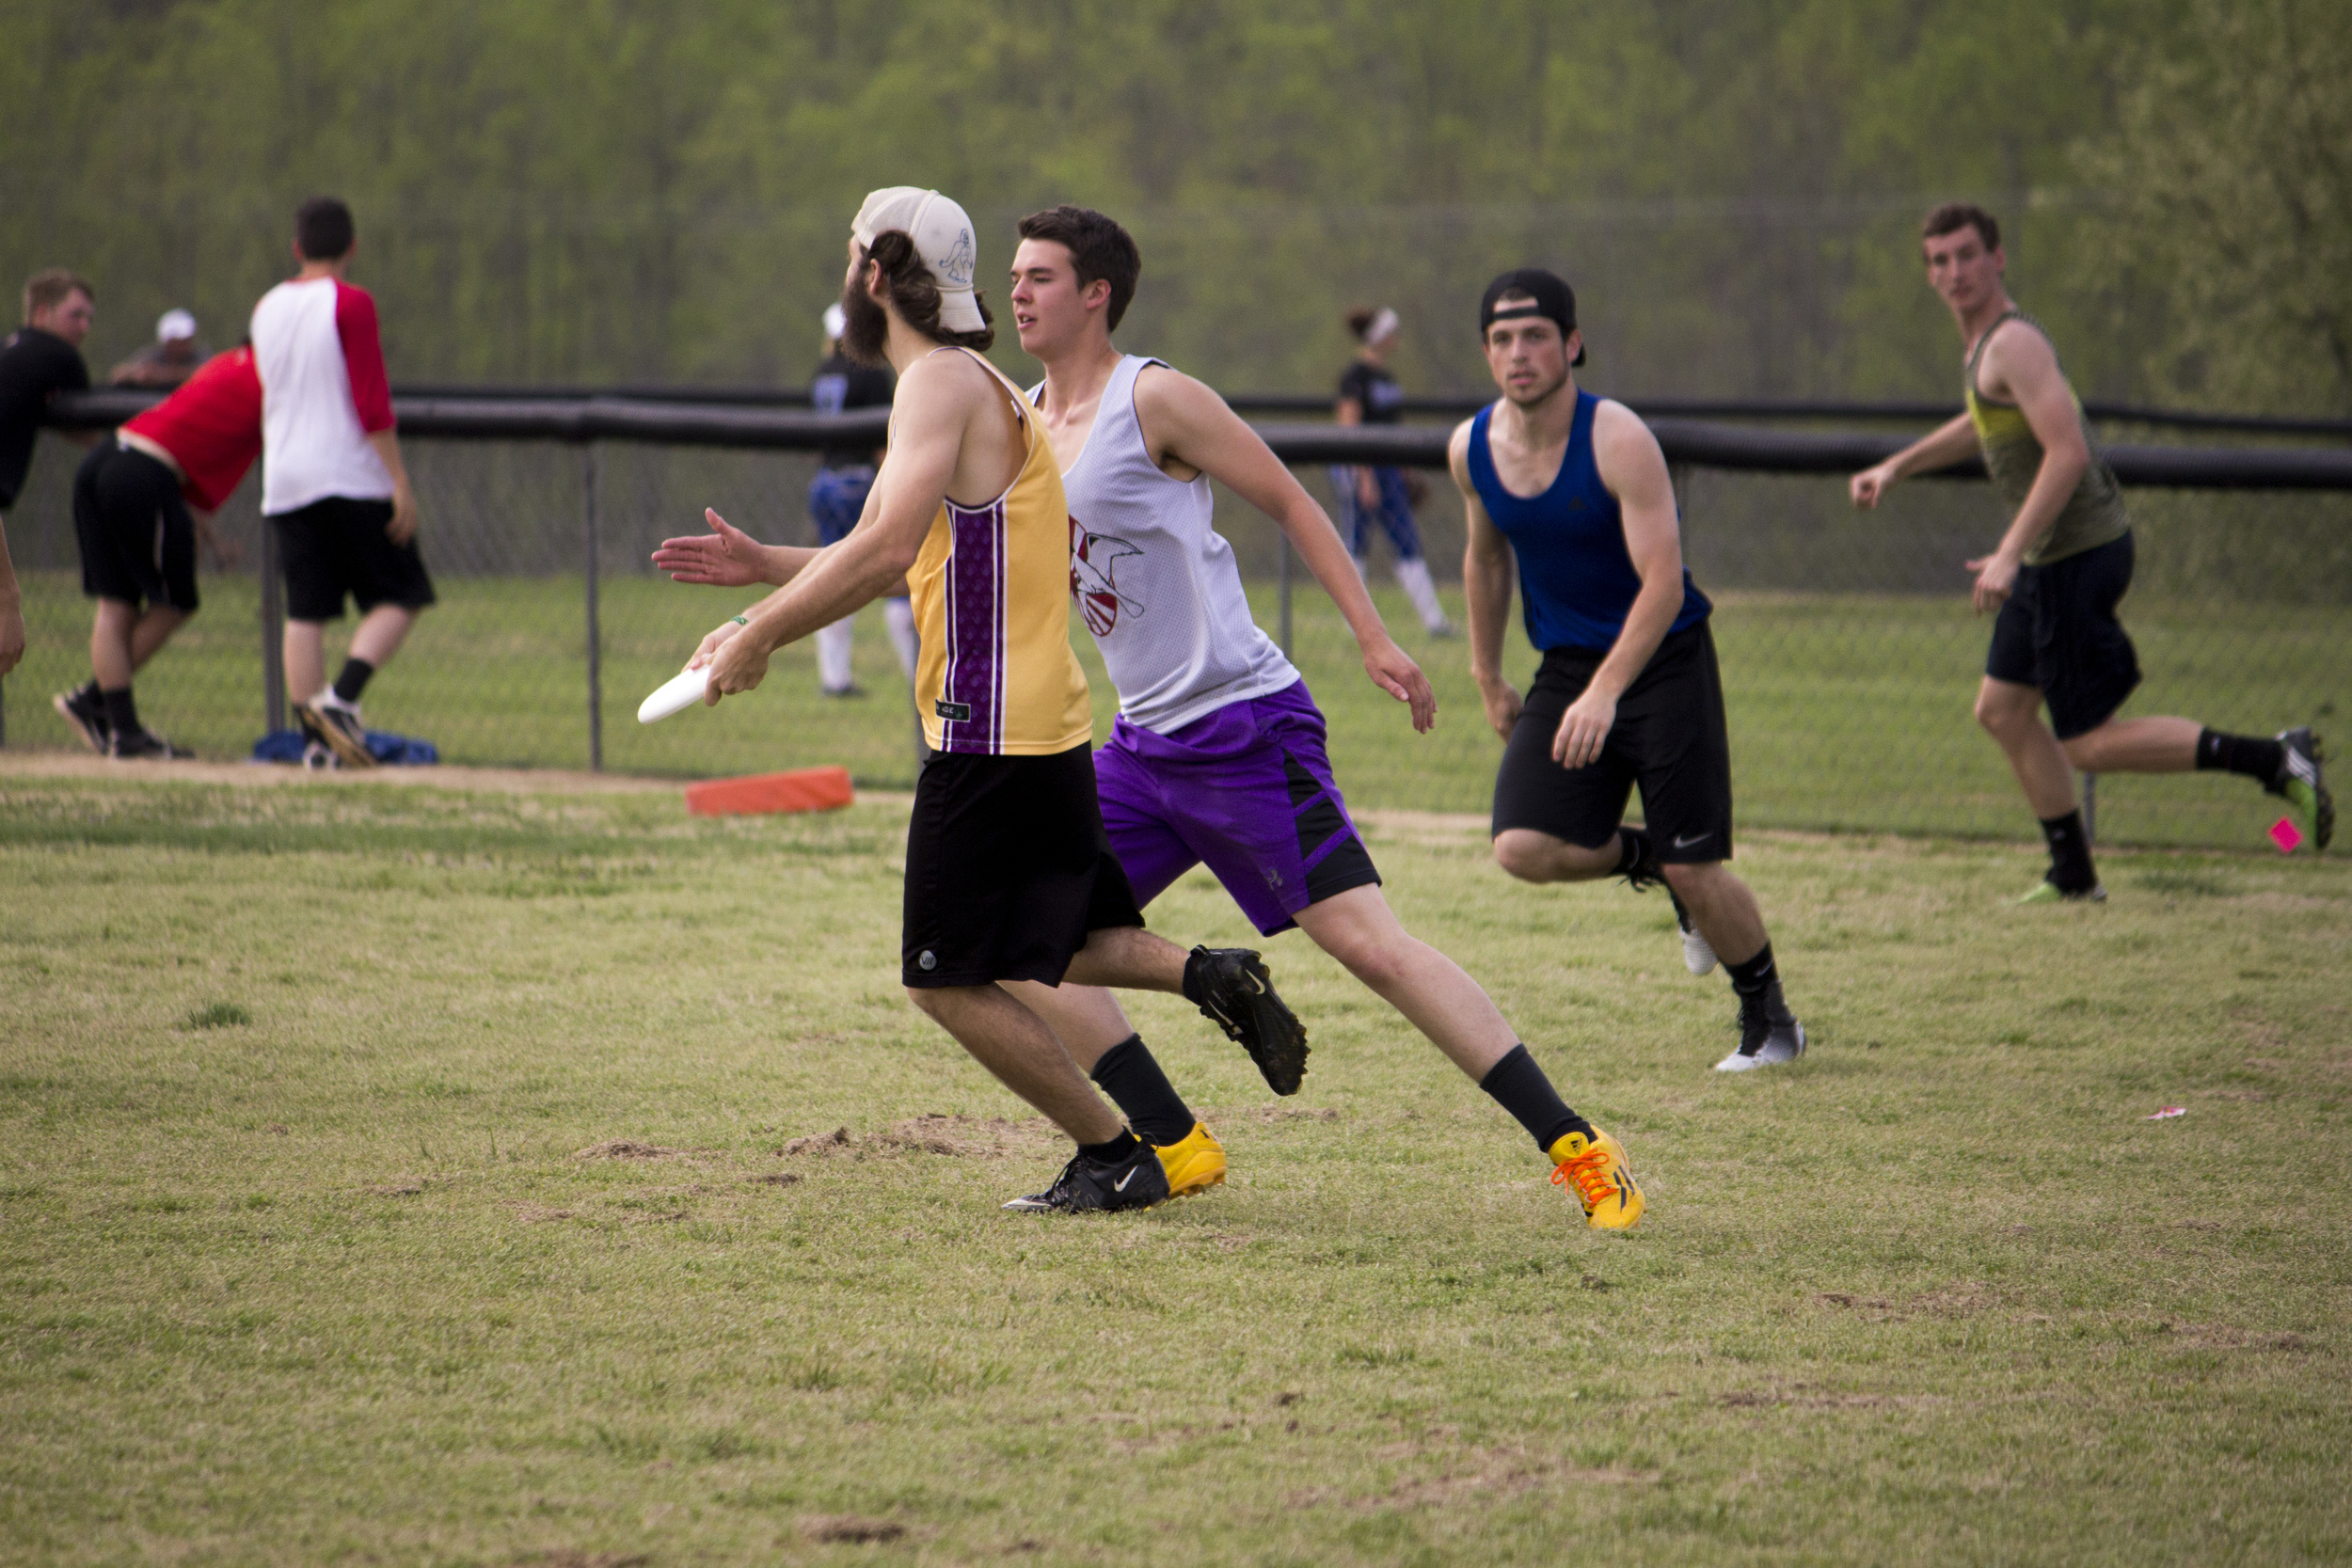 Senior Eric Payne looks downfield to pass to one of his members.